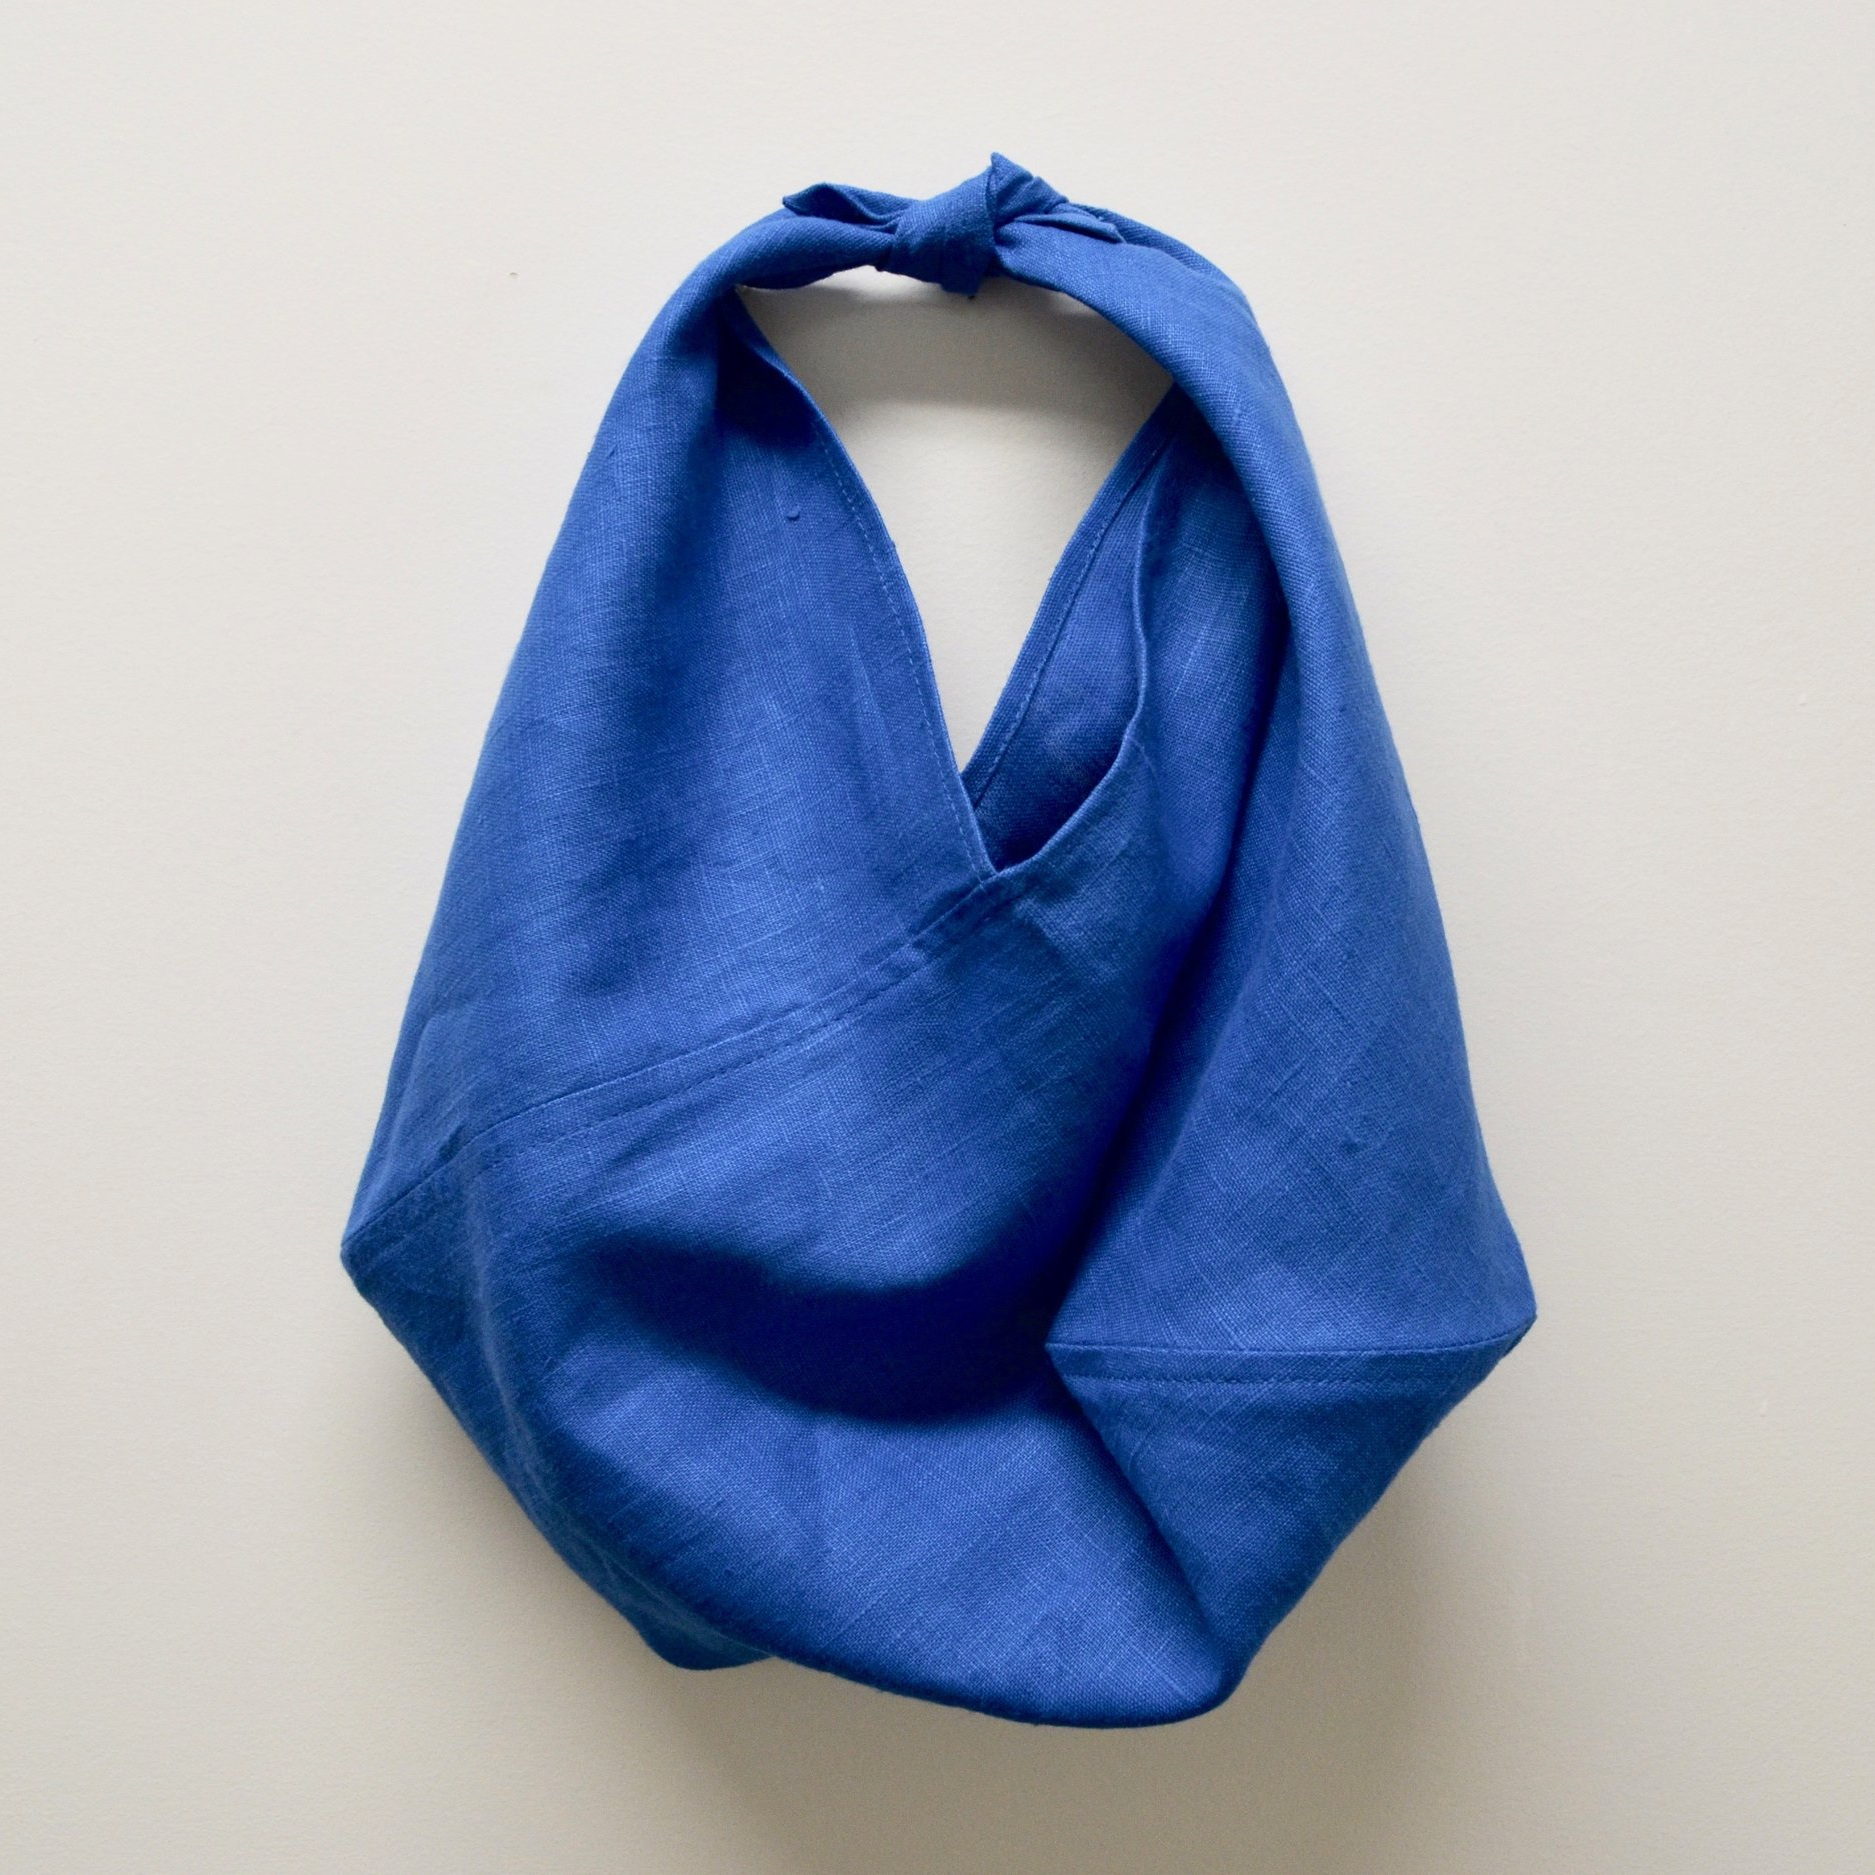 - SMALL LINEN BAG IN CORNFLOWER